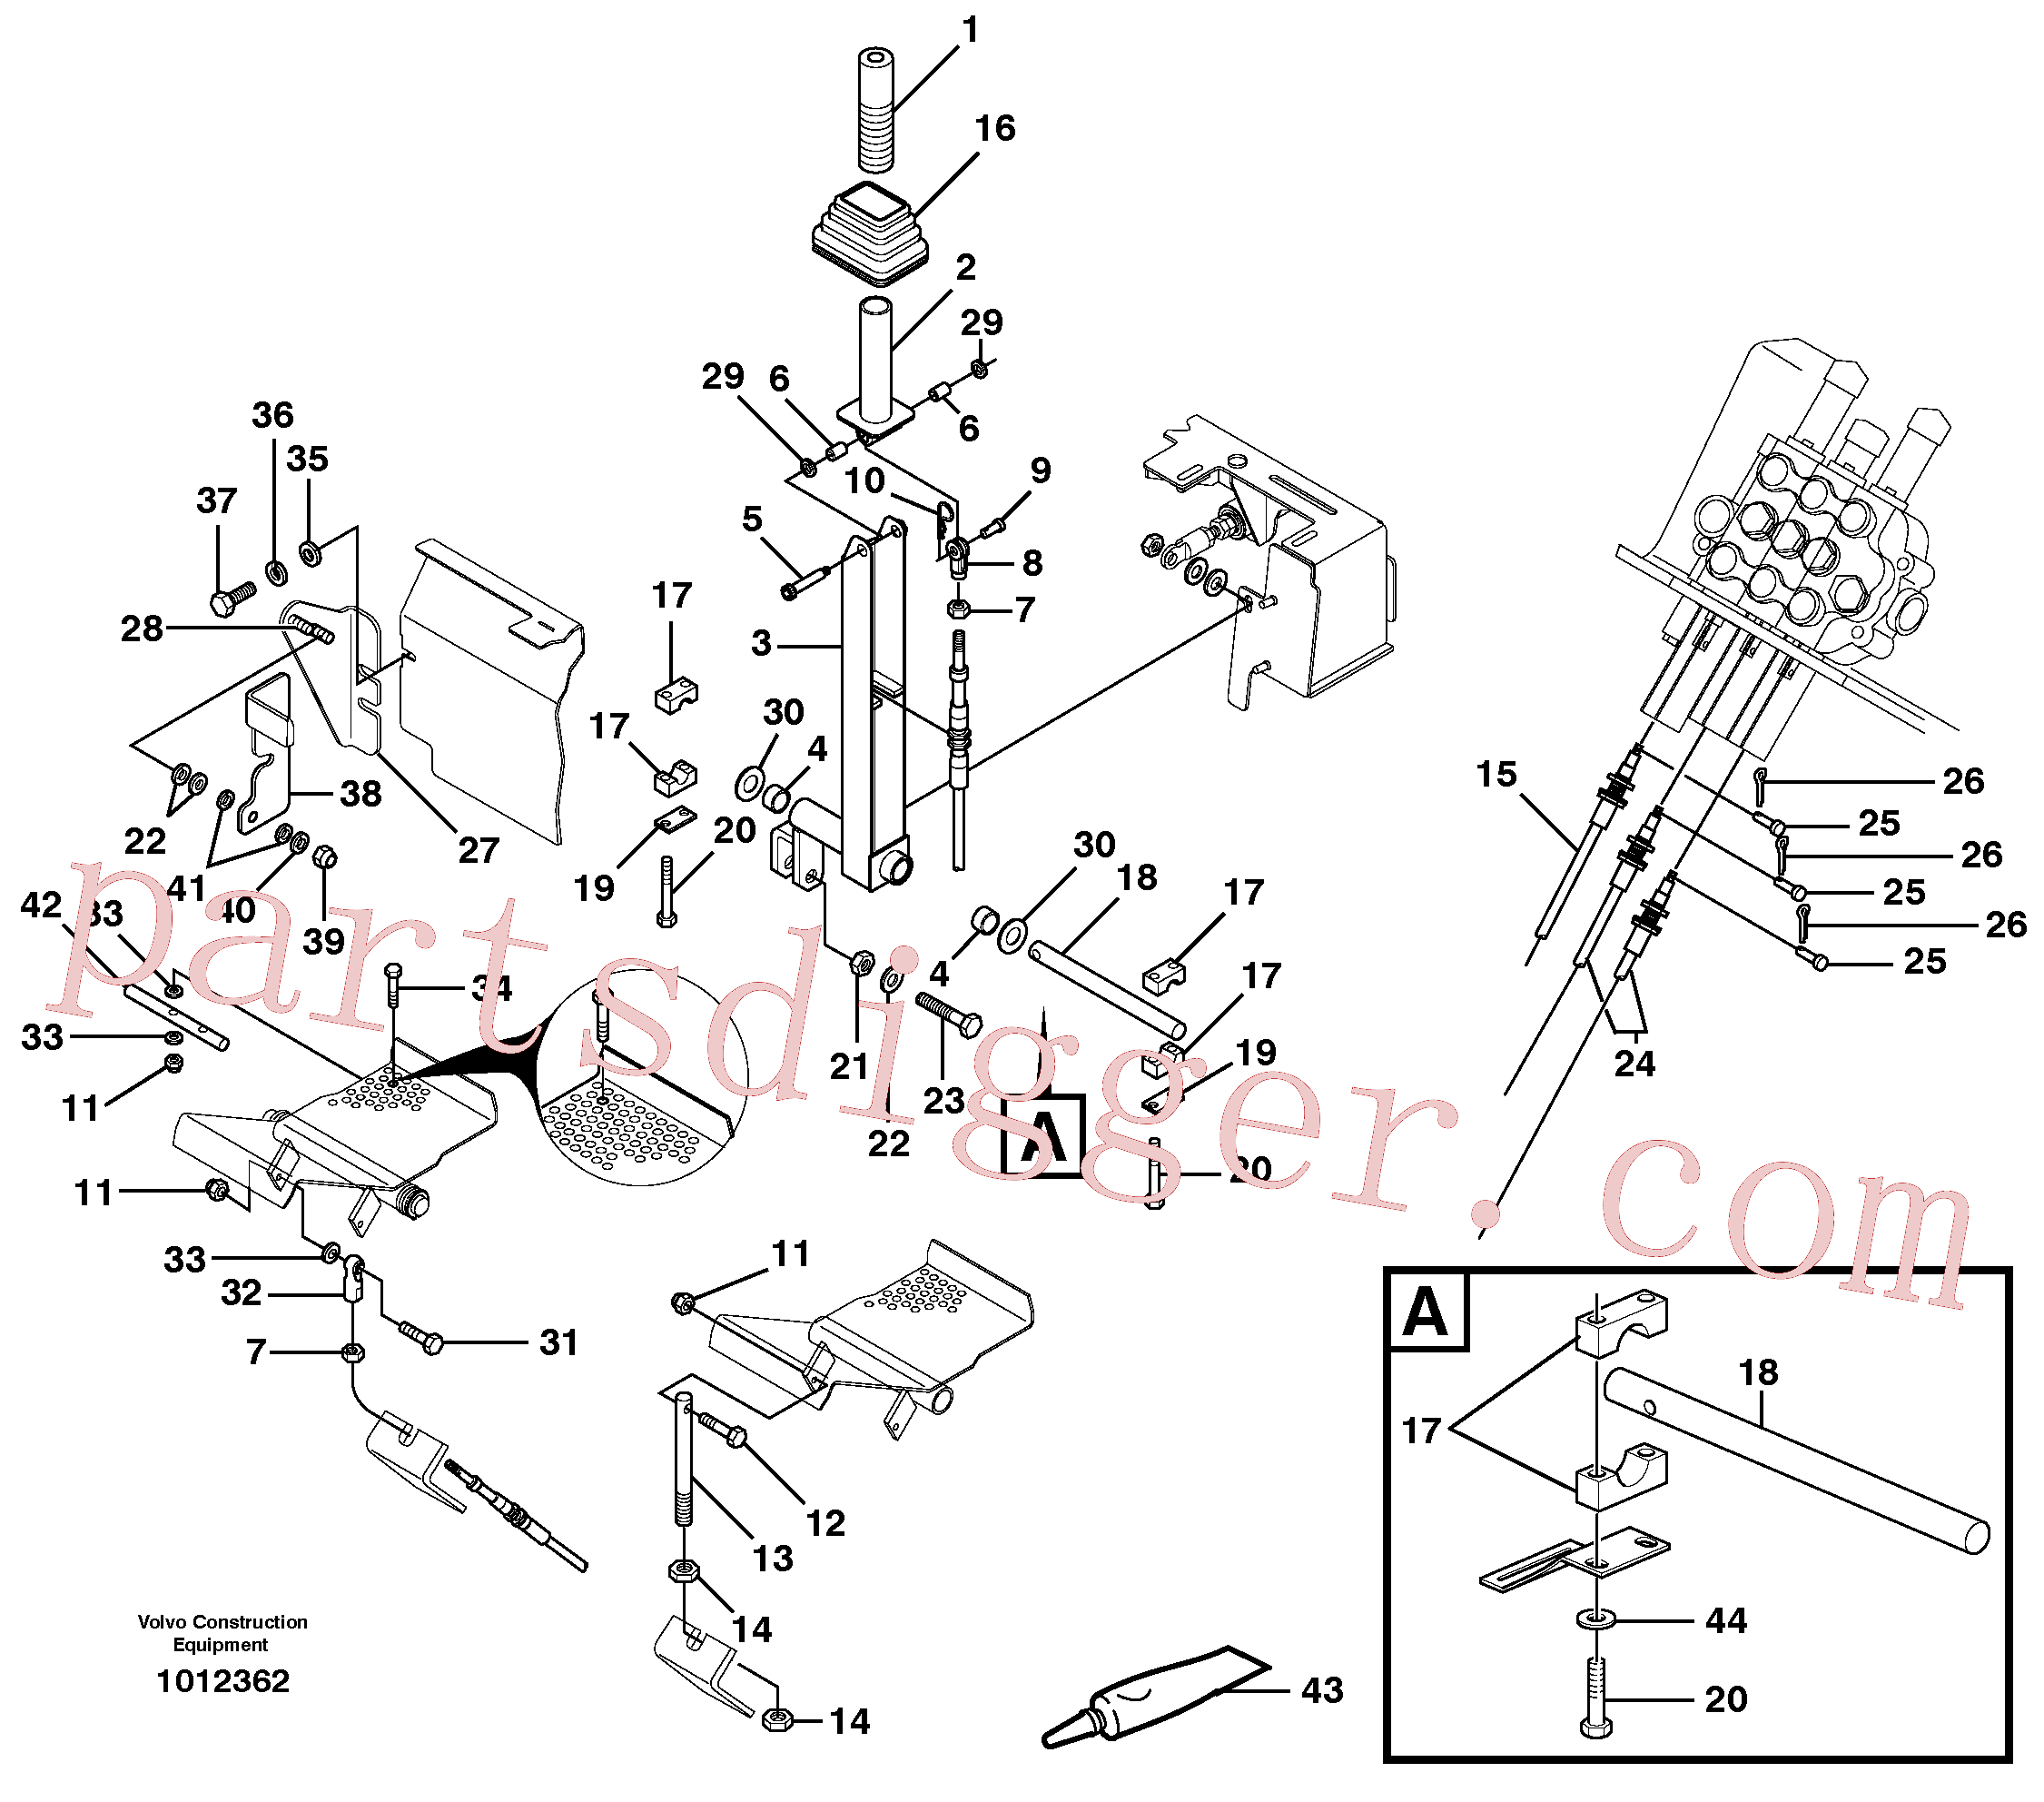 VOE11840922 for Volvo Optional hand controls(1012362 assembly)